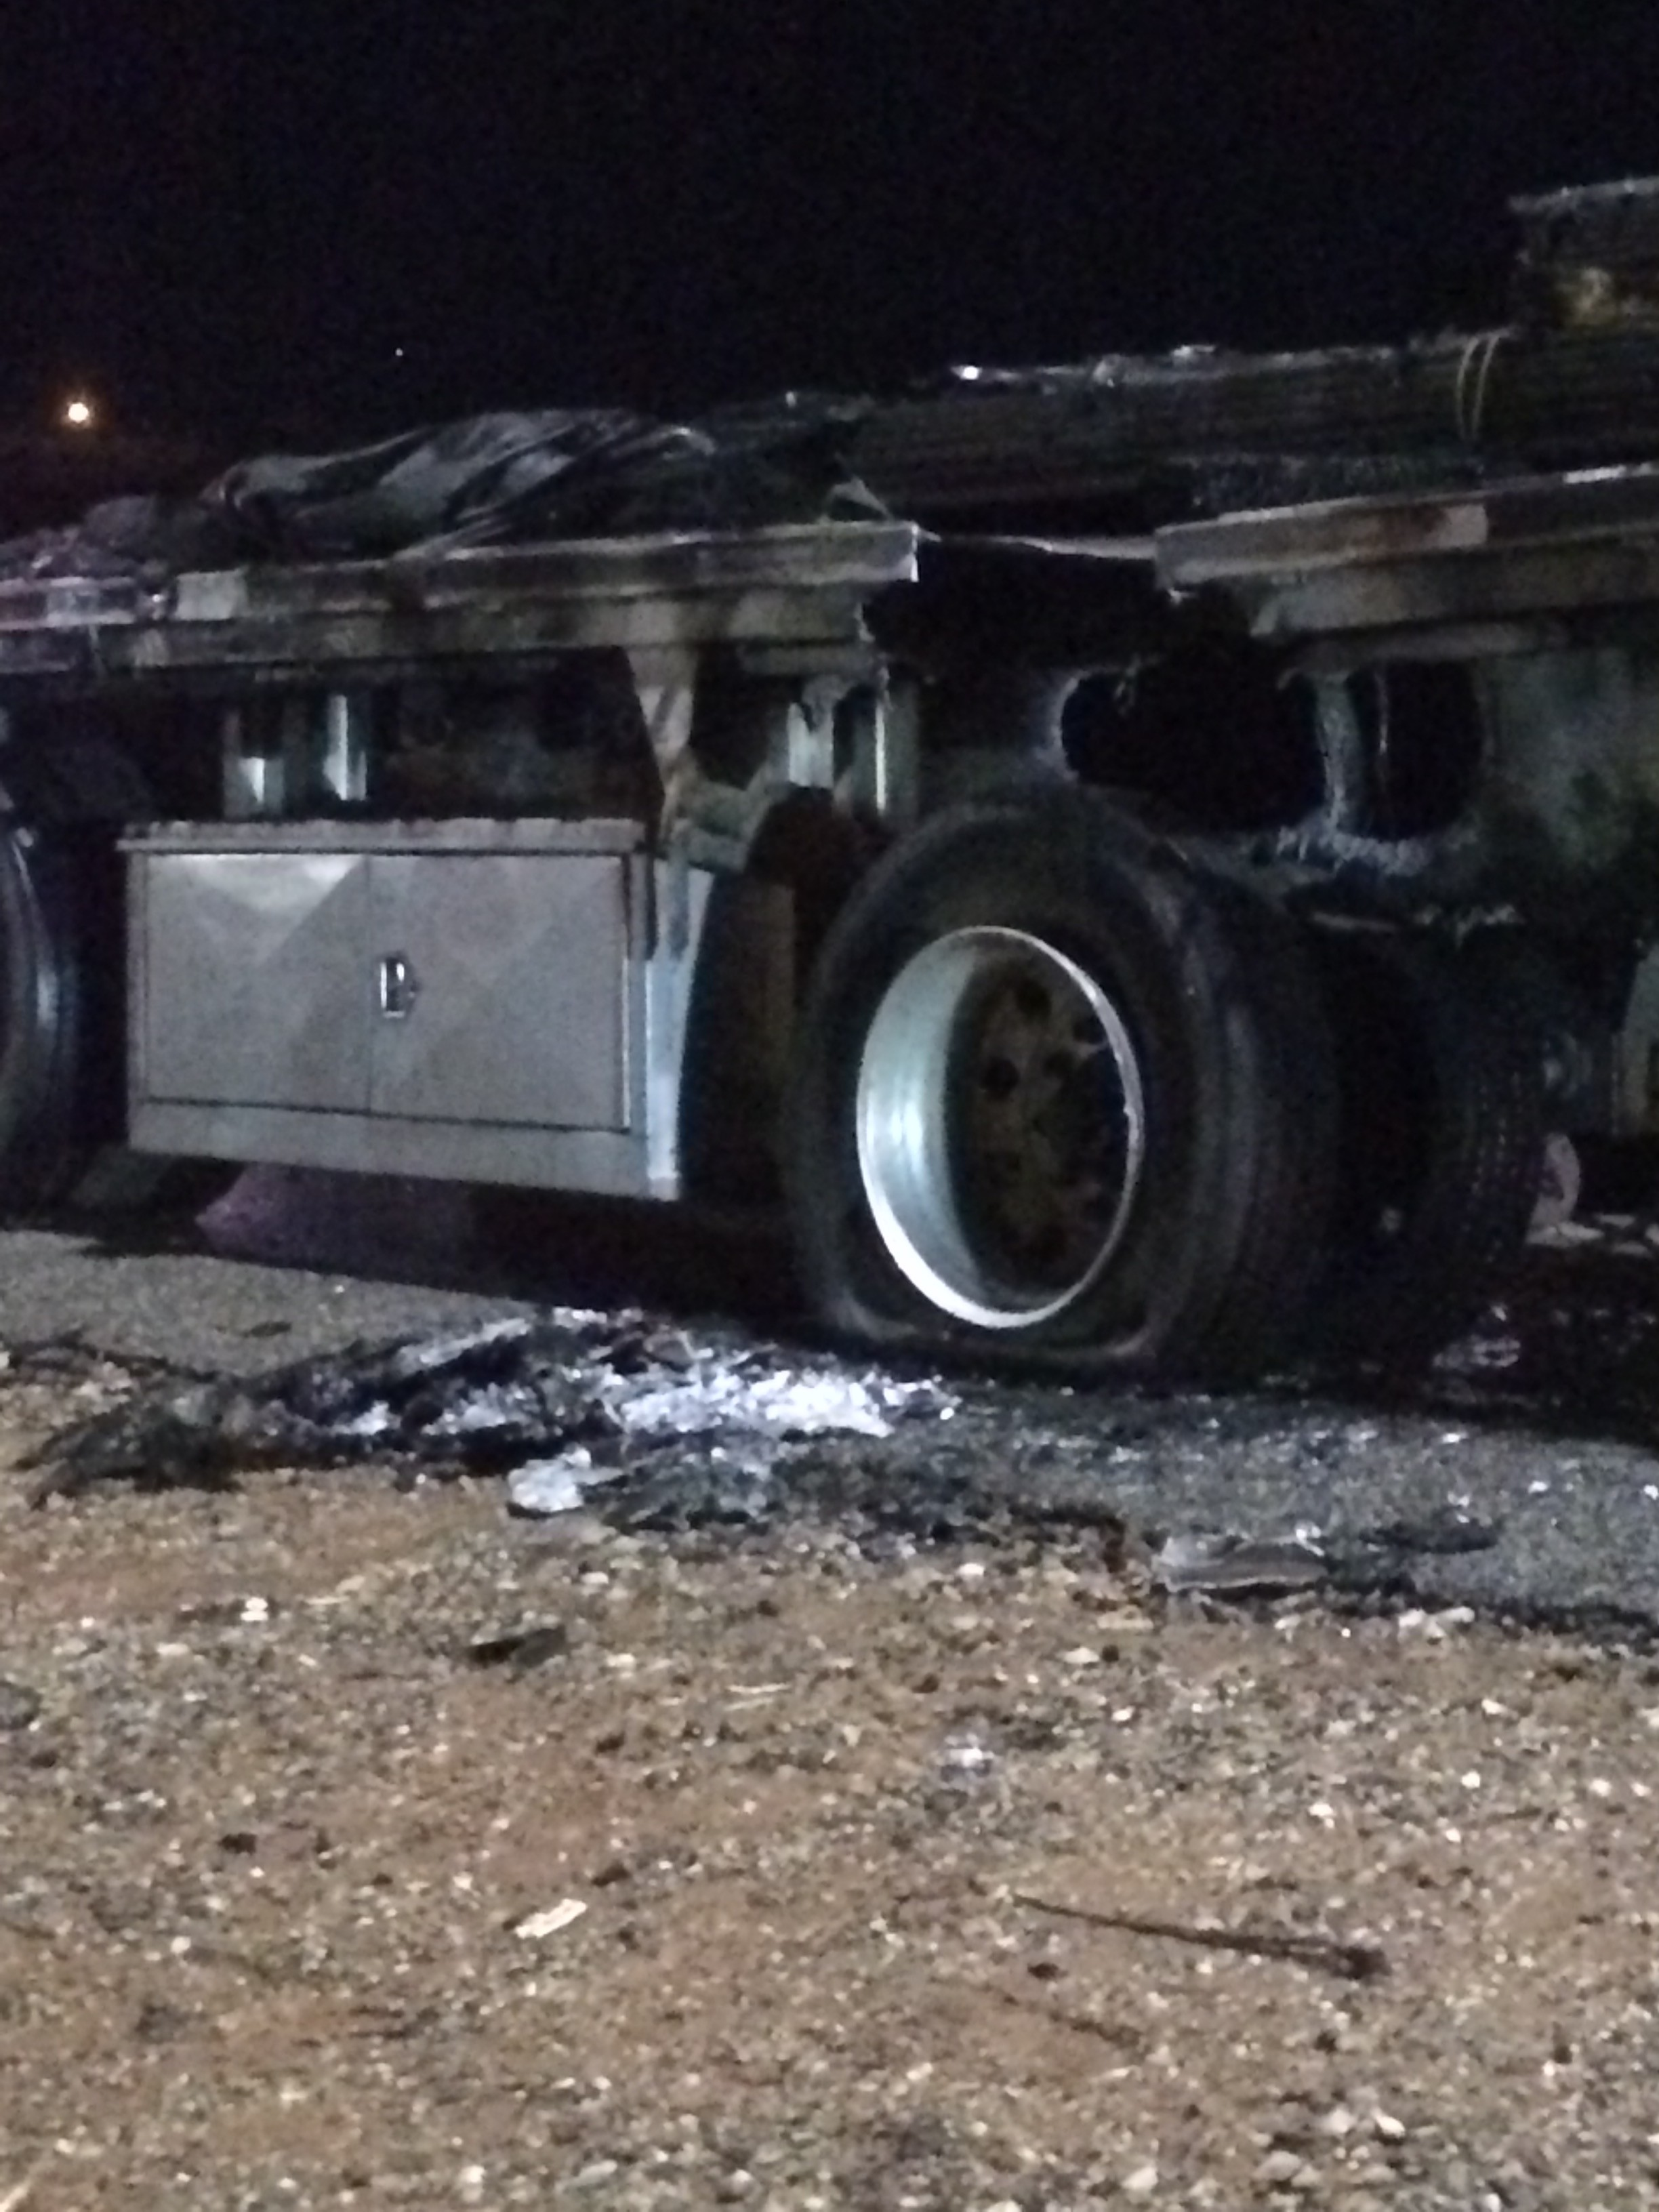 Rear axle of semitrailer that caught fire north of mile marker 8, Interstate 15 southbound, St. George, Utah, Jan. 26, 2016 | Photo by Cody Blowers, St. George news